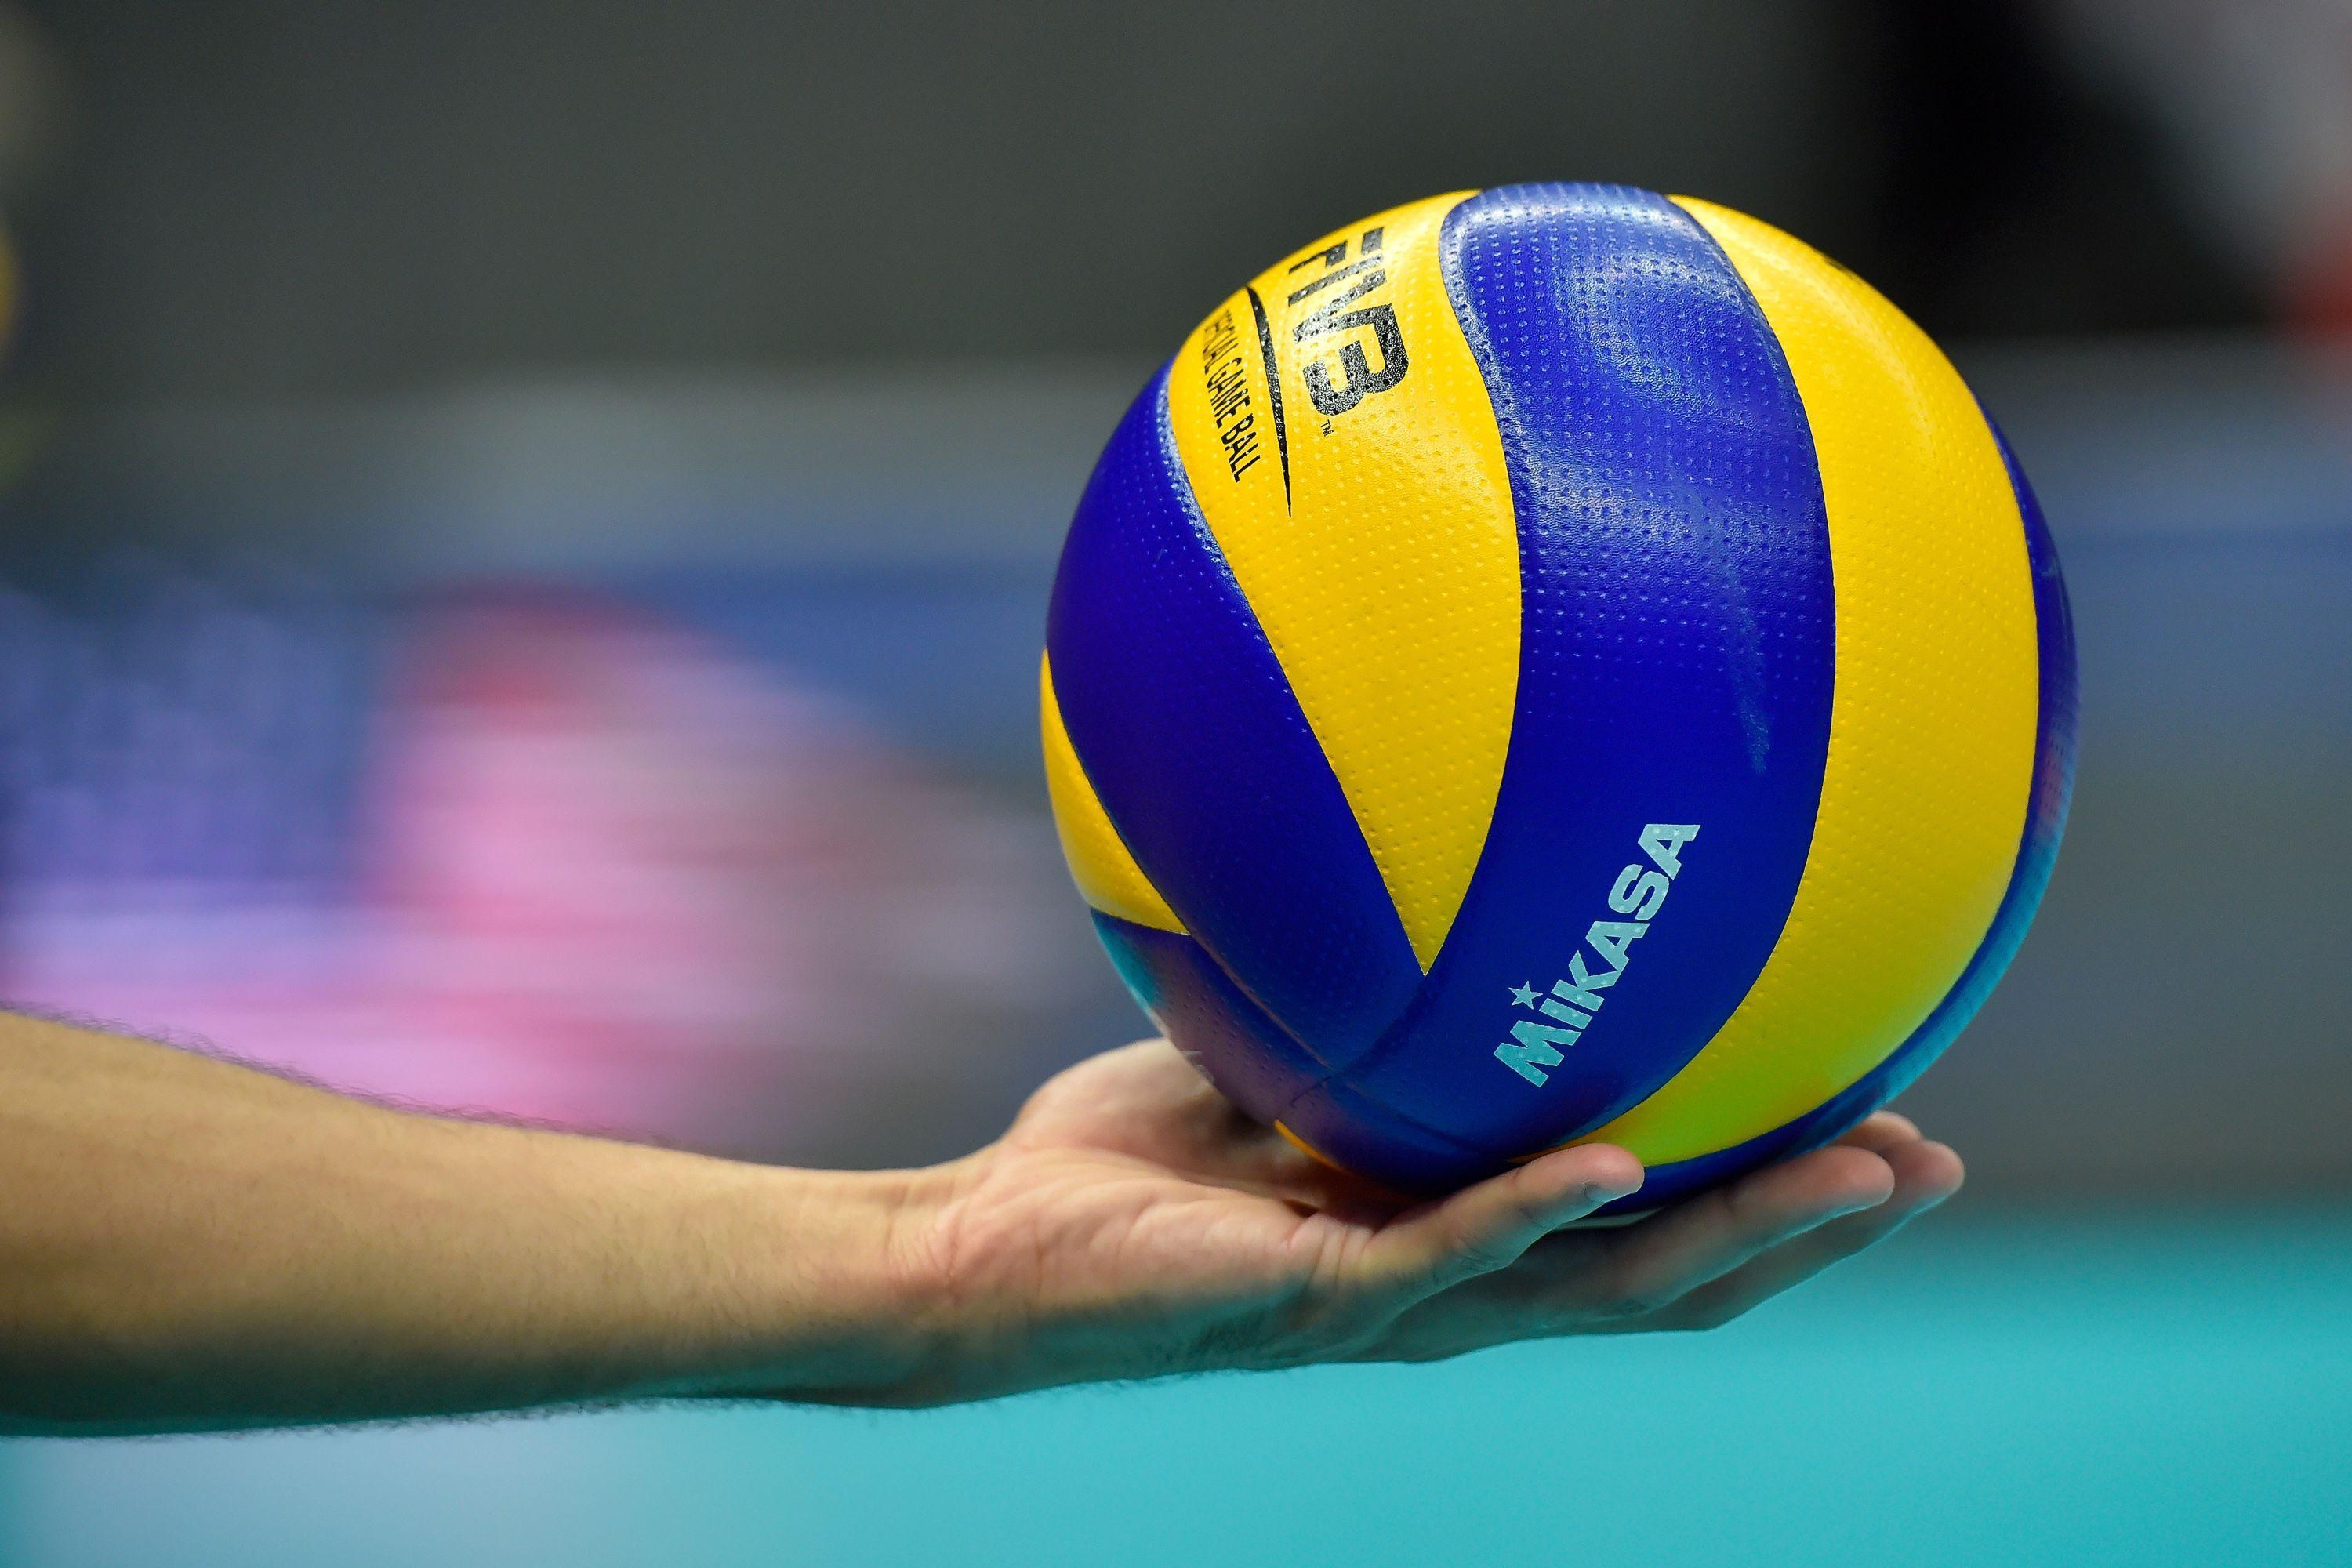 Volleyball Wallpapers Images Photos Pictures Backgrounds | HD .